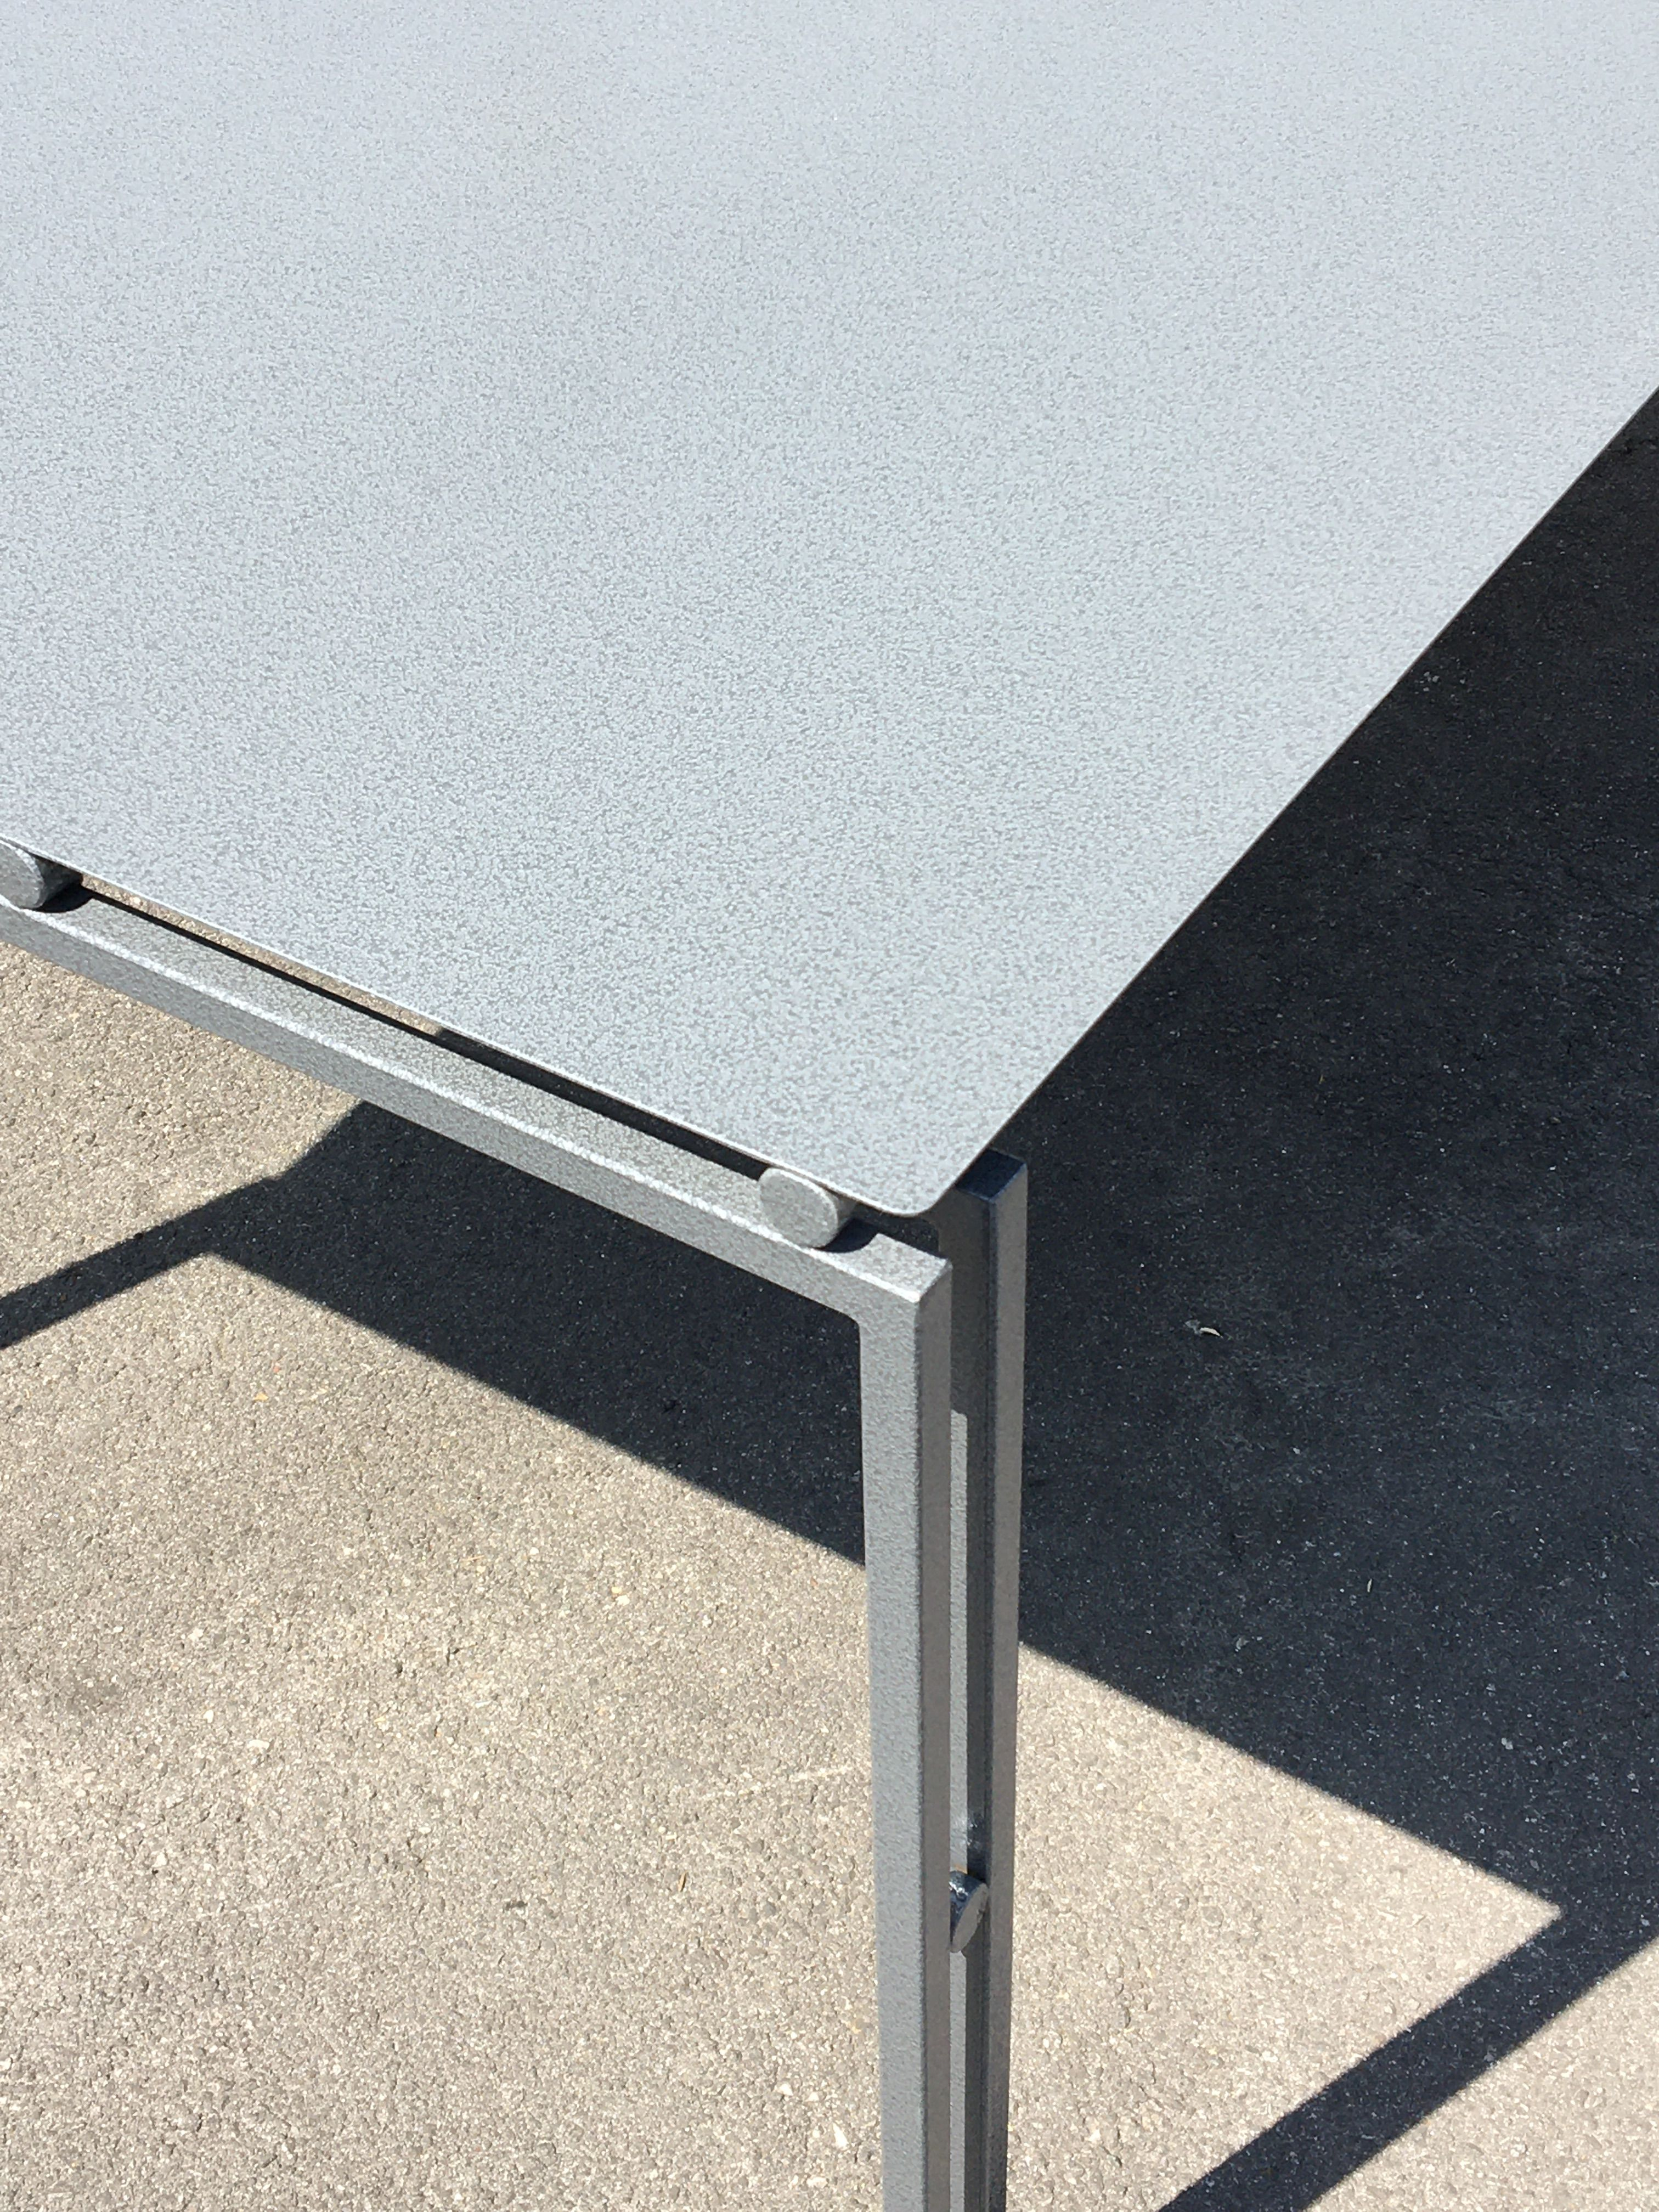 Suspension Metal Dining Table - Mid Size product image 8